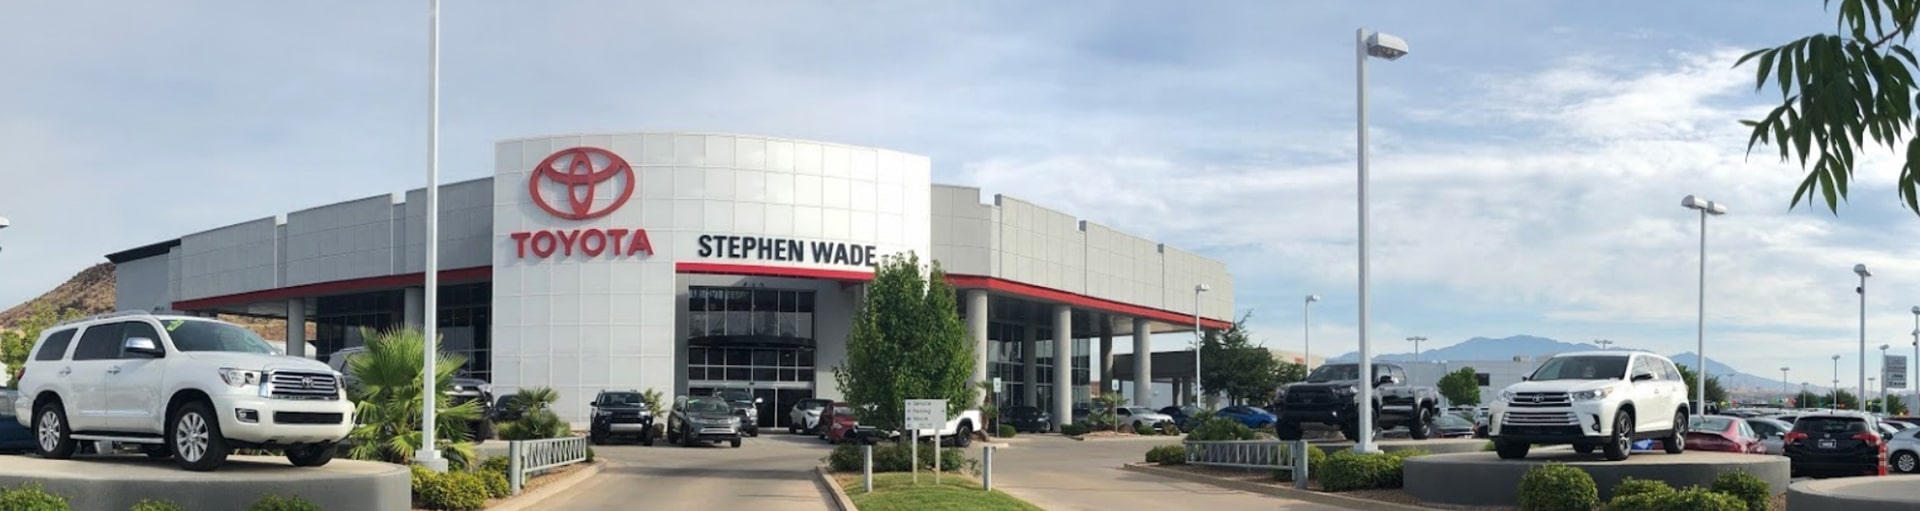 Stephen Wade Toyota Service & Parts Specials